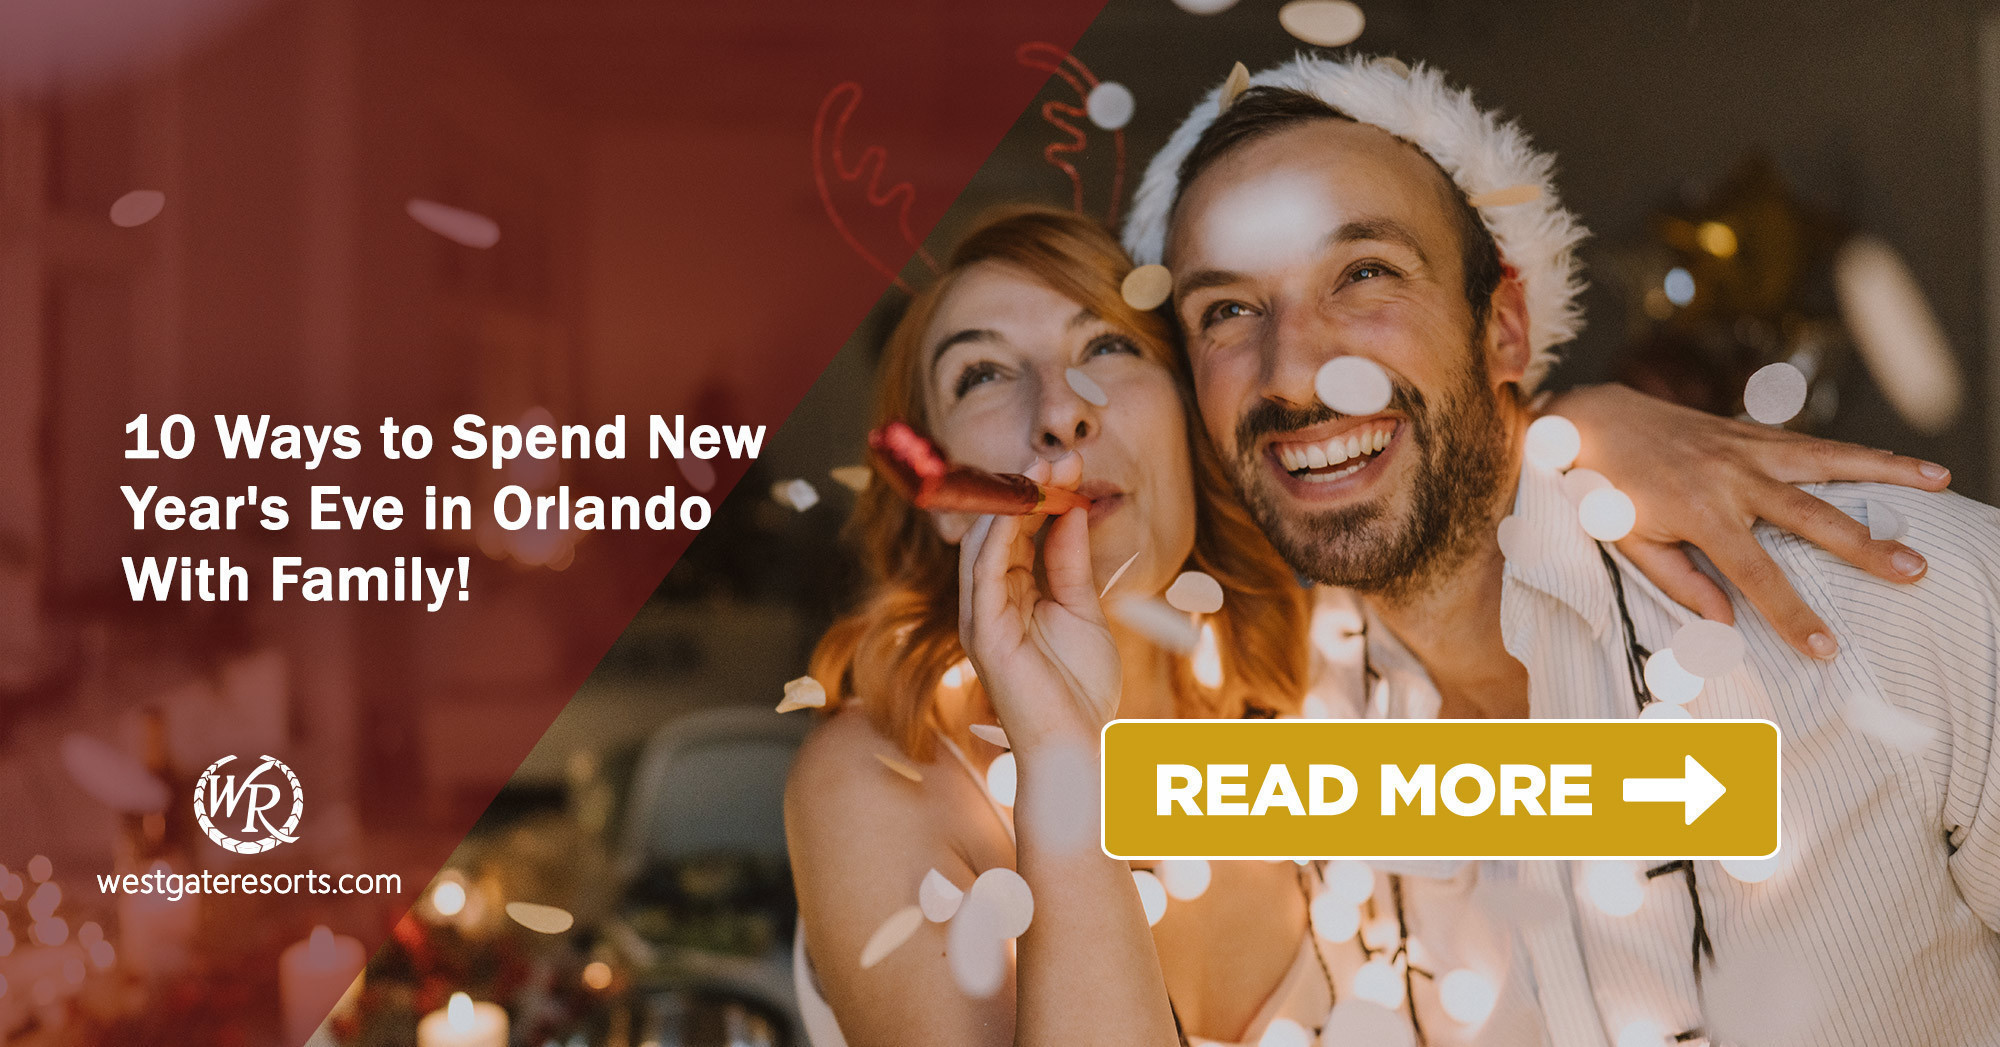 10 Ways to Spend New Year's Eve in Orlando With Family!